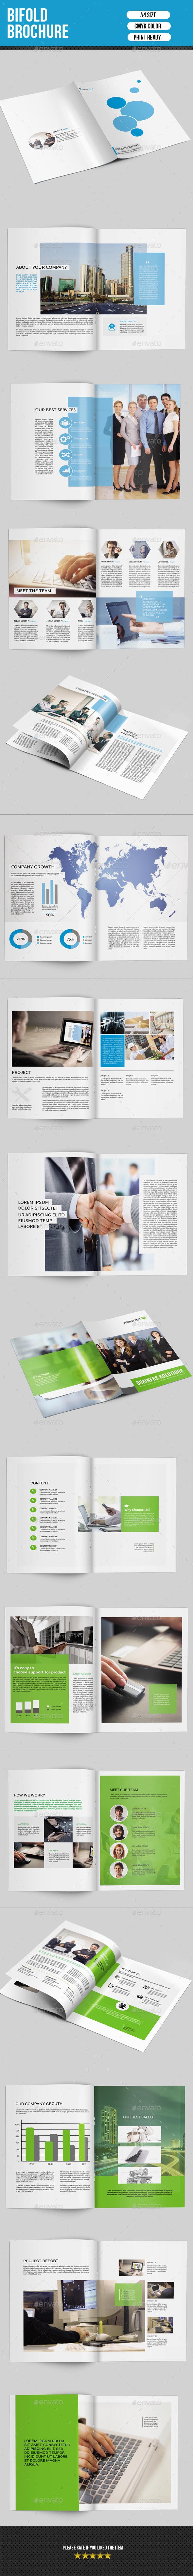 Corporate Bifold Brochure Bundle-V06